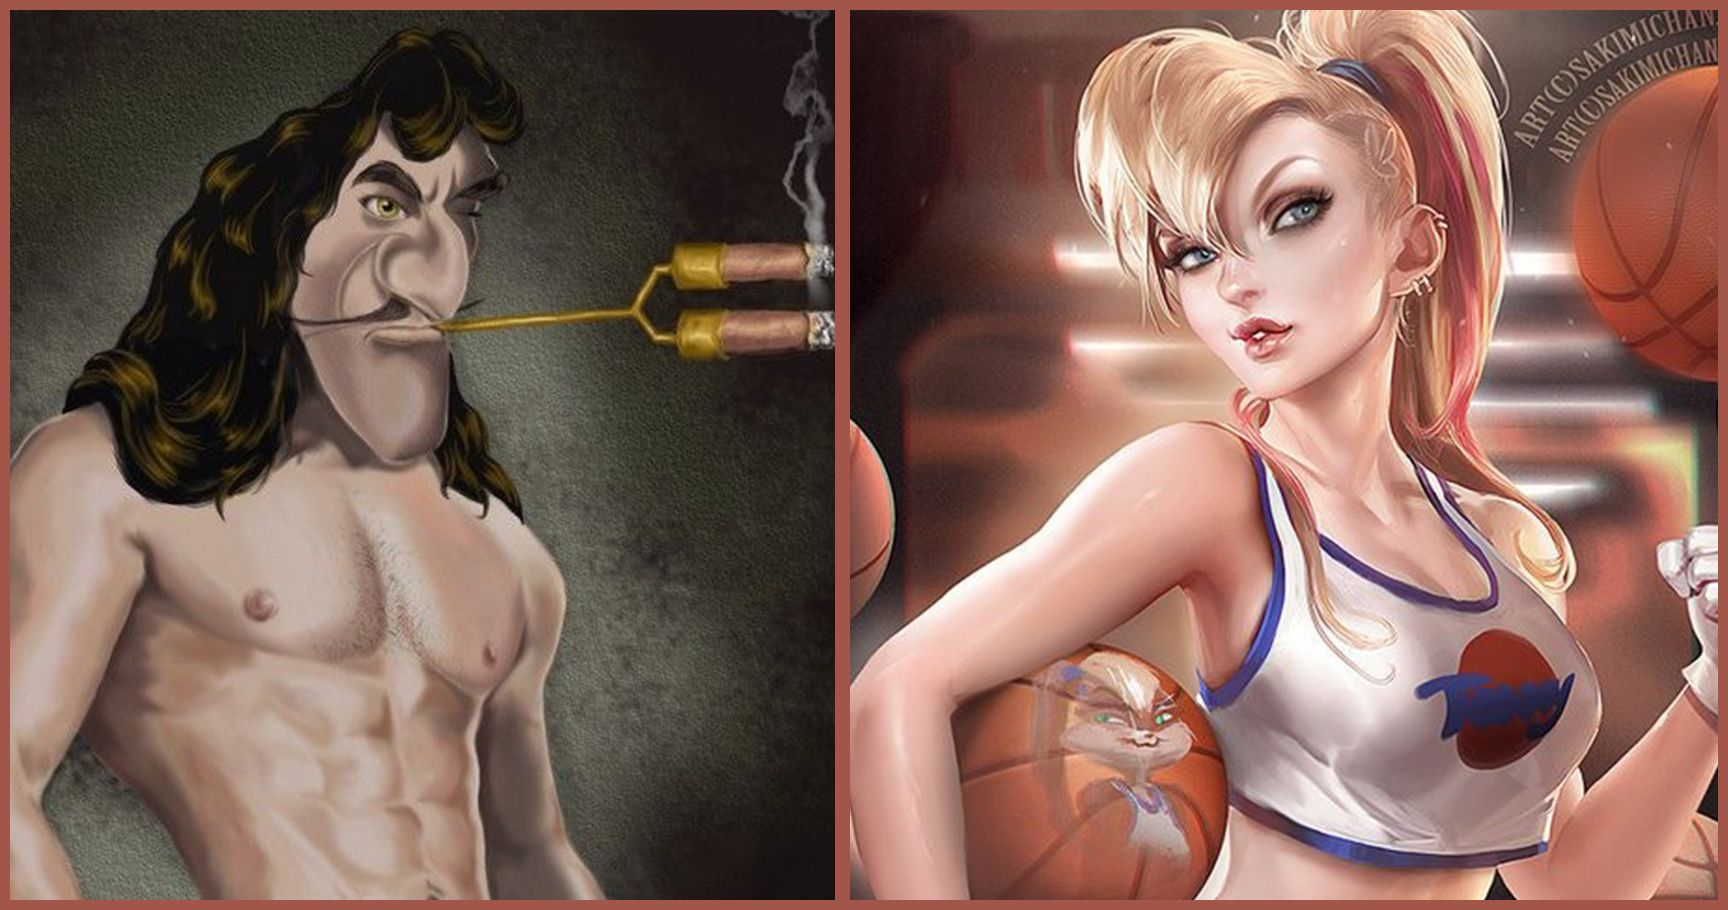 16 Steamy Reimagined Characters We'd Actually Be Attracted To